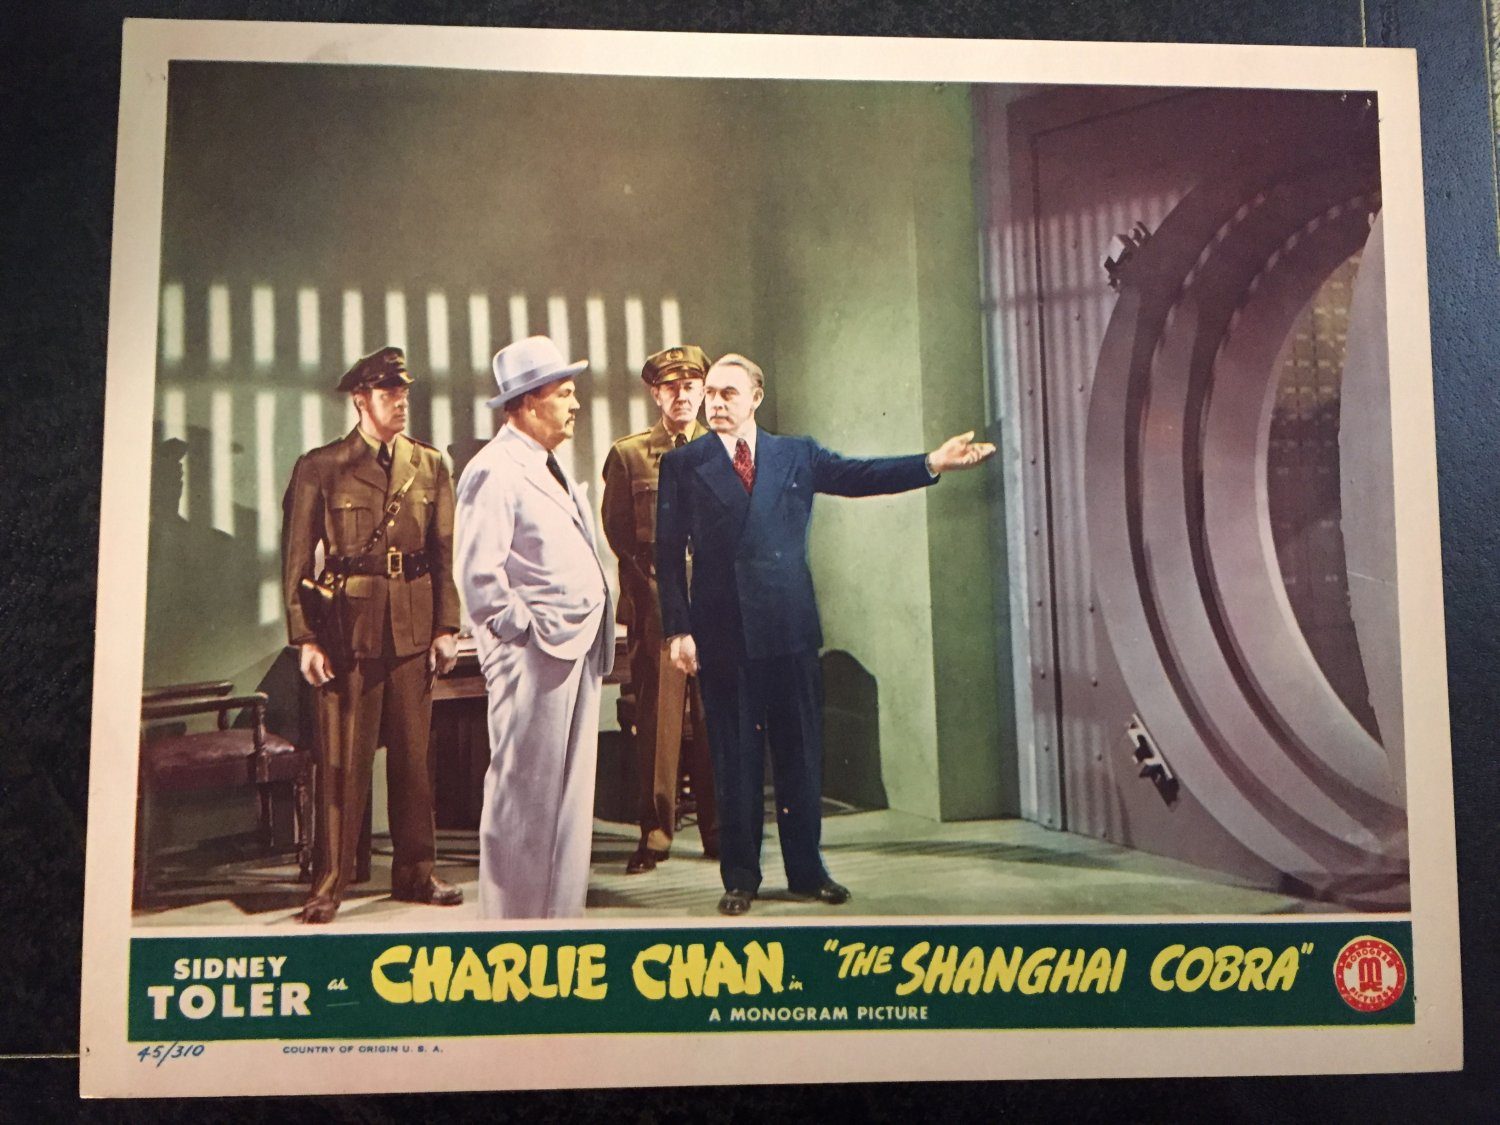 CHARLIE CHAN as THE SHANGHAI COBRA LOBBY CARD, MONOGRAM PICTURE 1945, SIDNEY TOLER